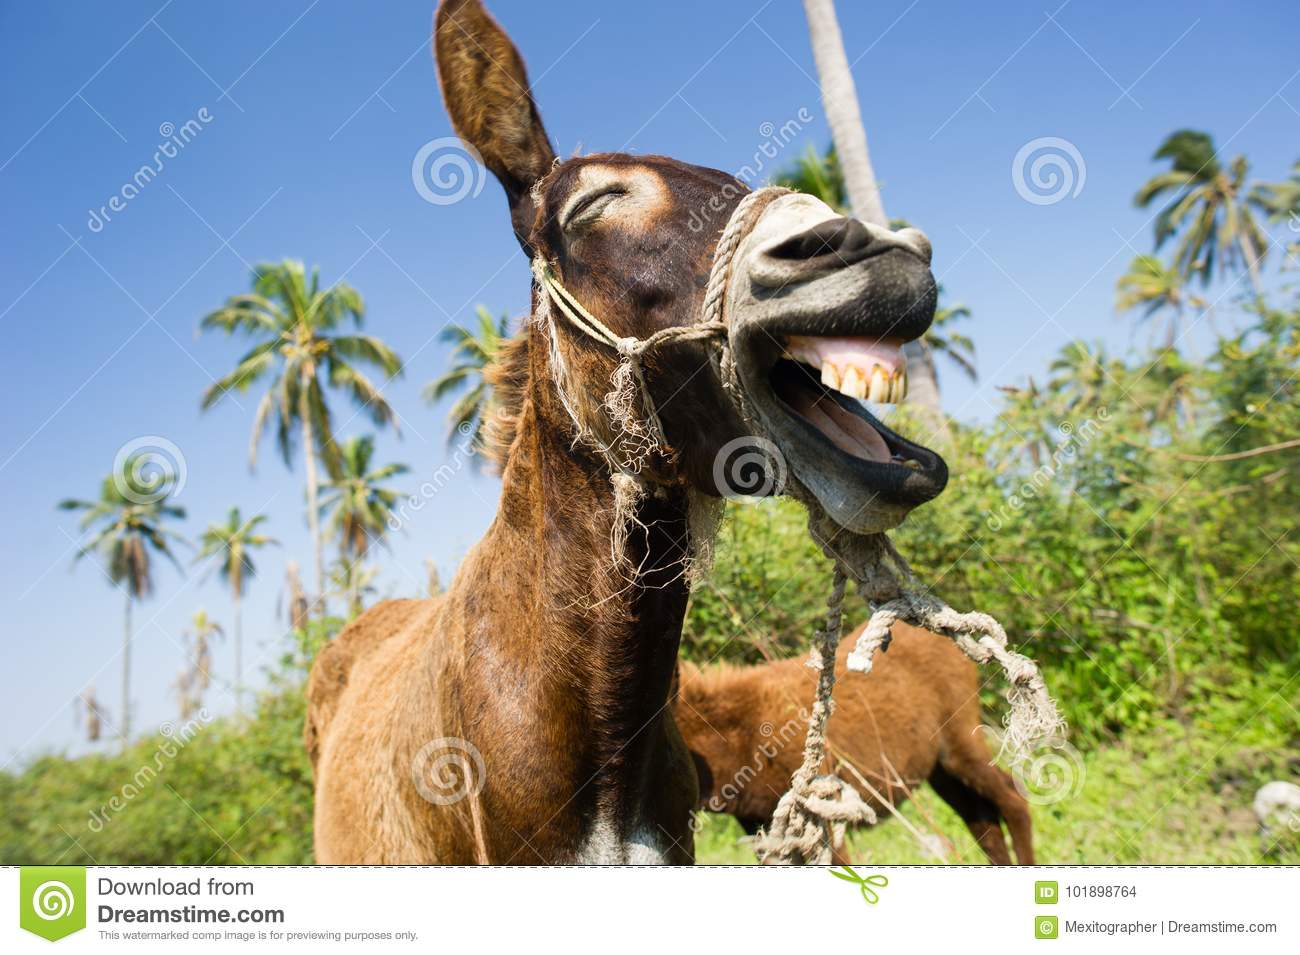 Funny Donkey Laughing Stock Photo | CartoonDealer.com ... - photo#35